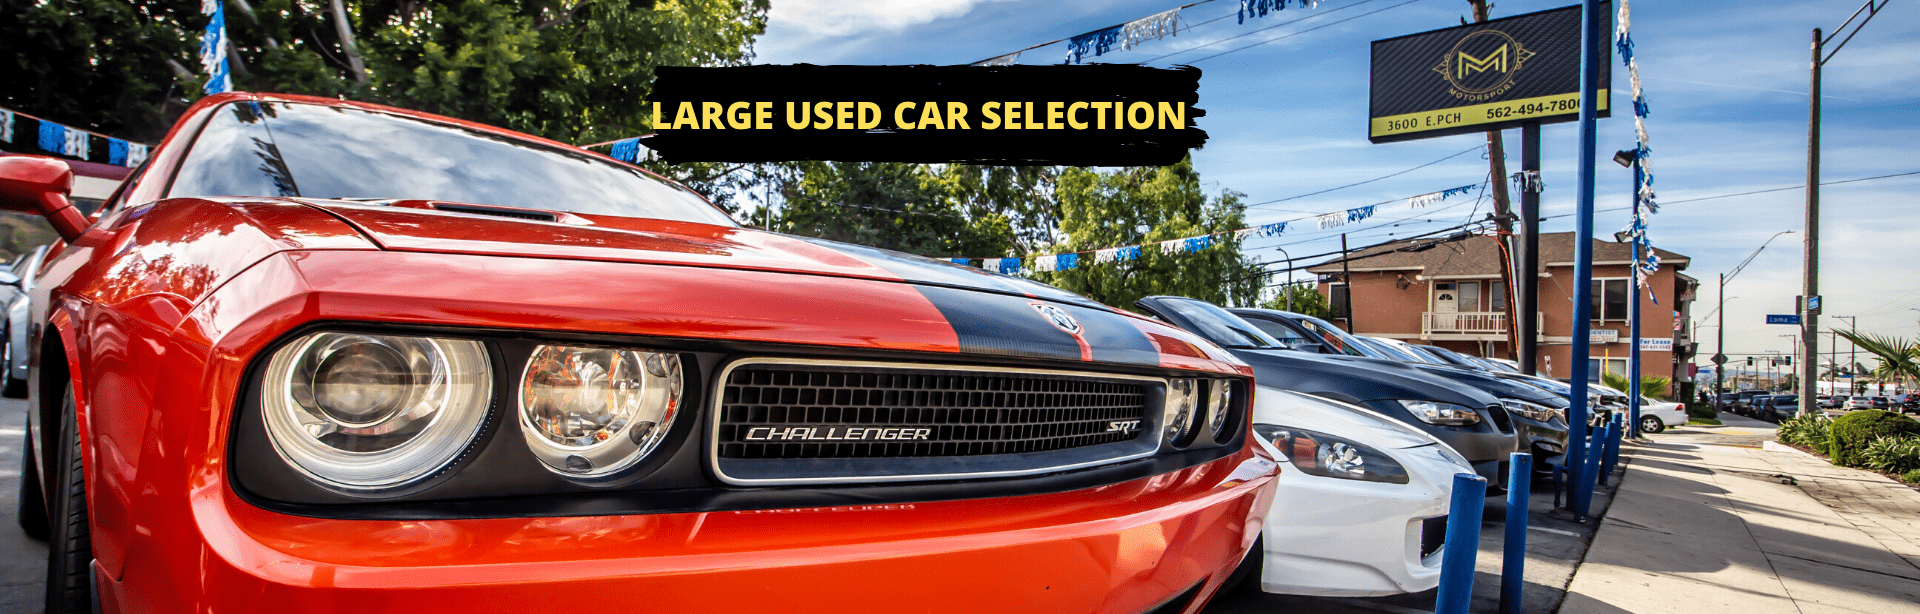 LARGE USED CAR SELECTION